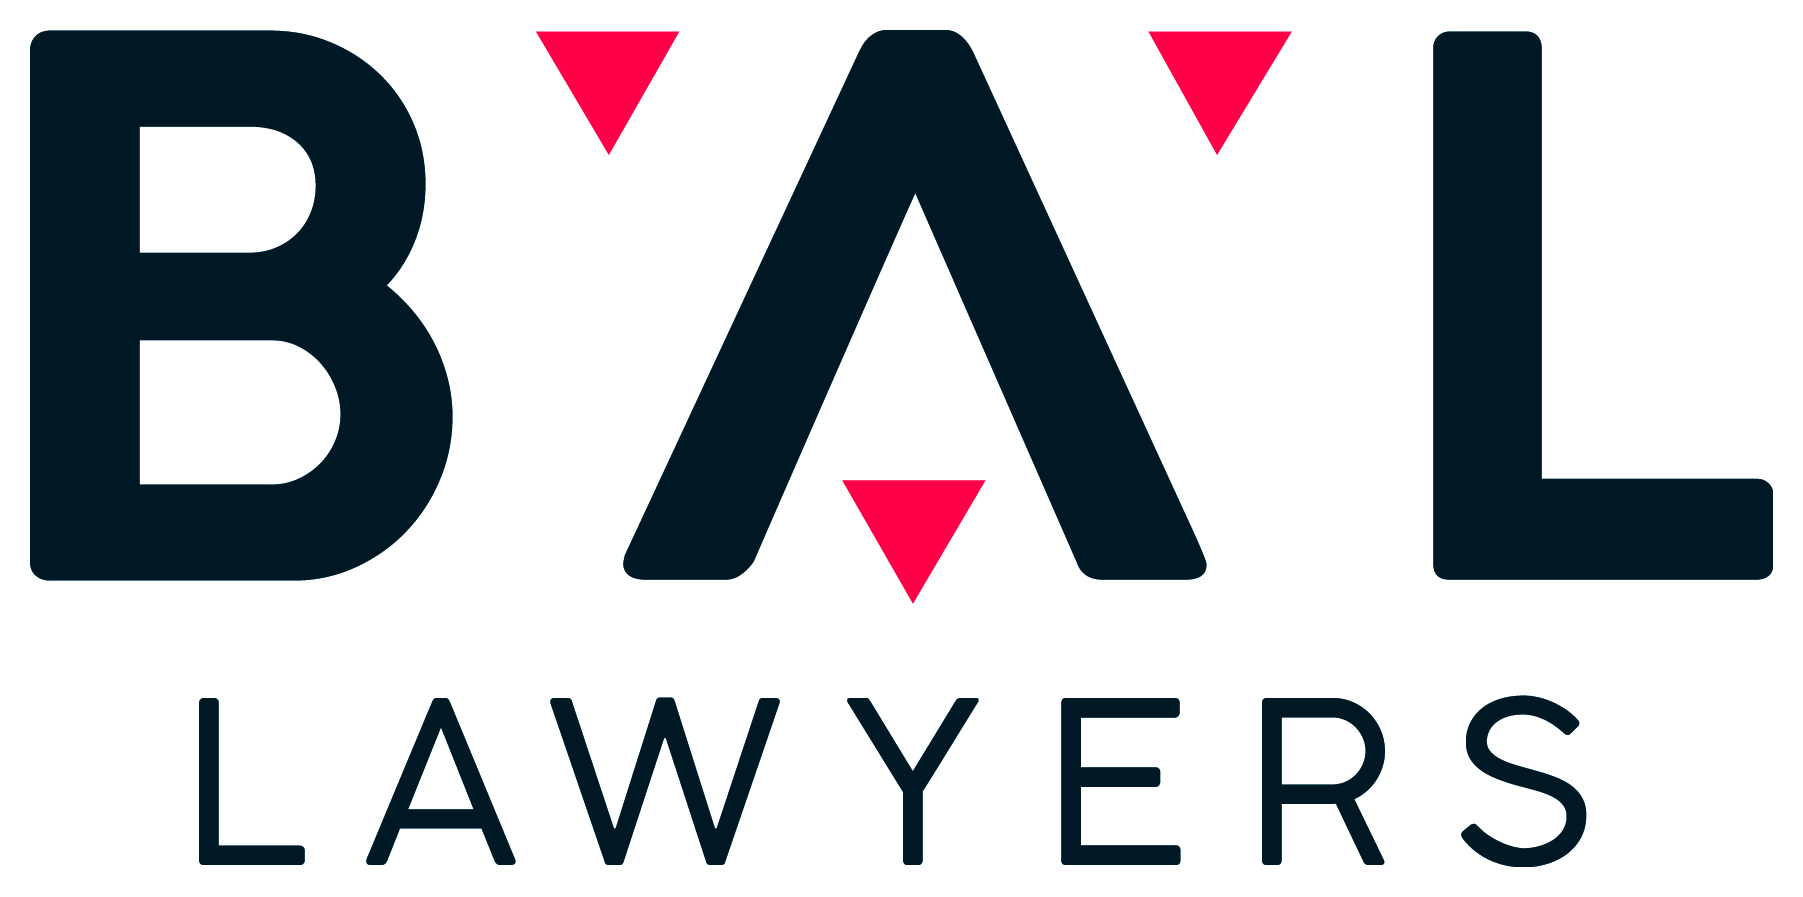 BRADLEY ALLEN LOVE LAWYERS_logo